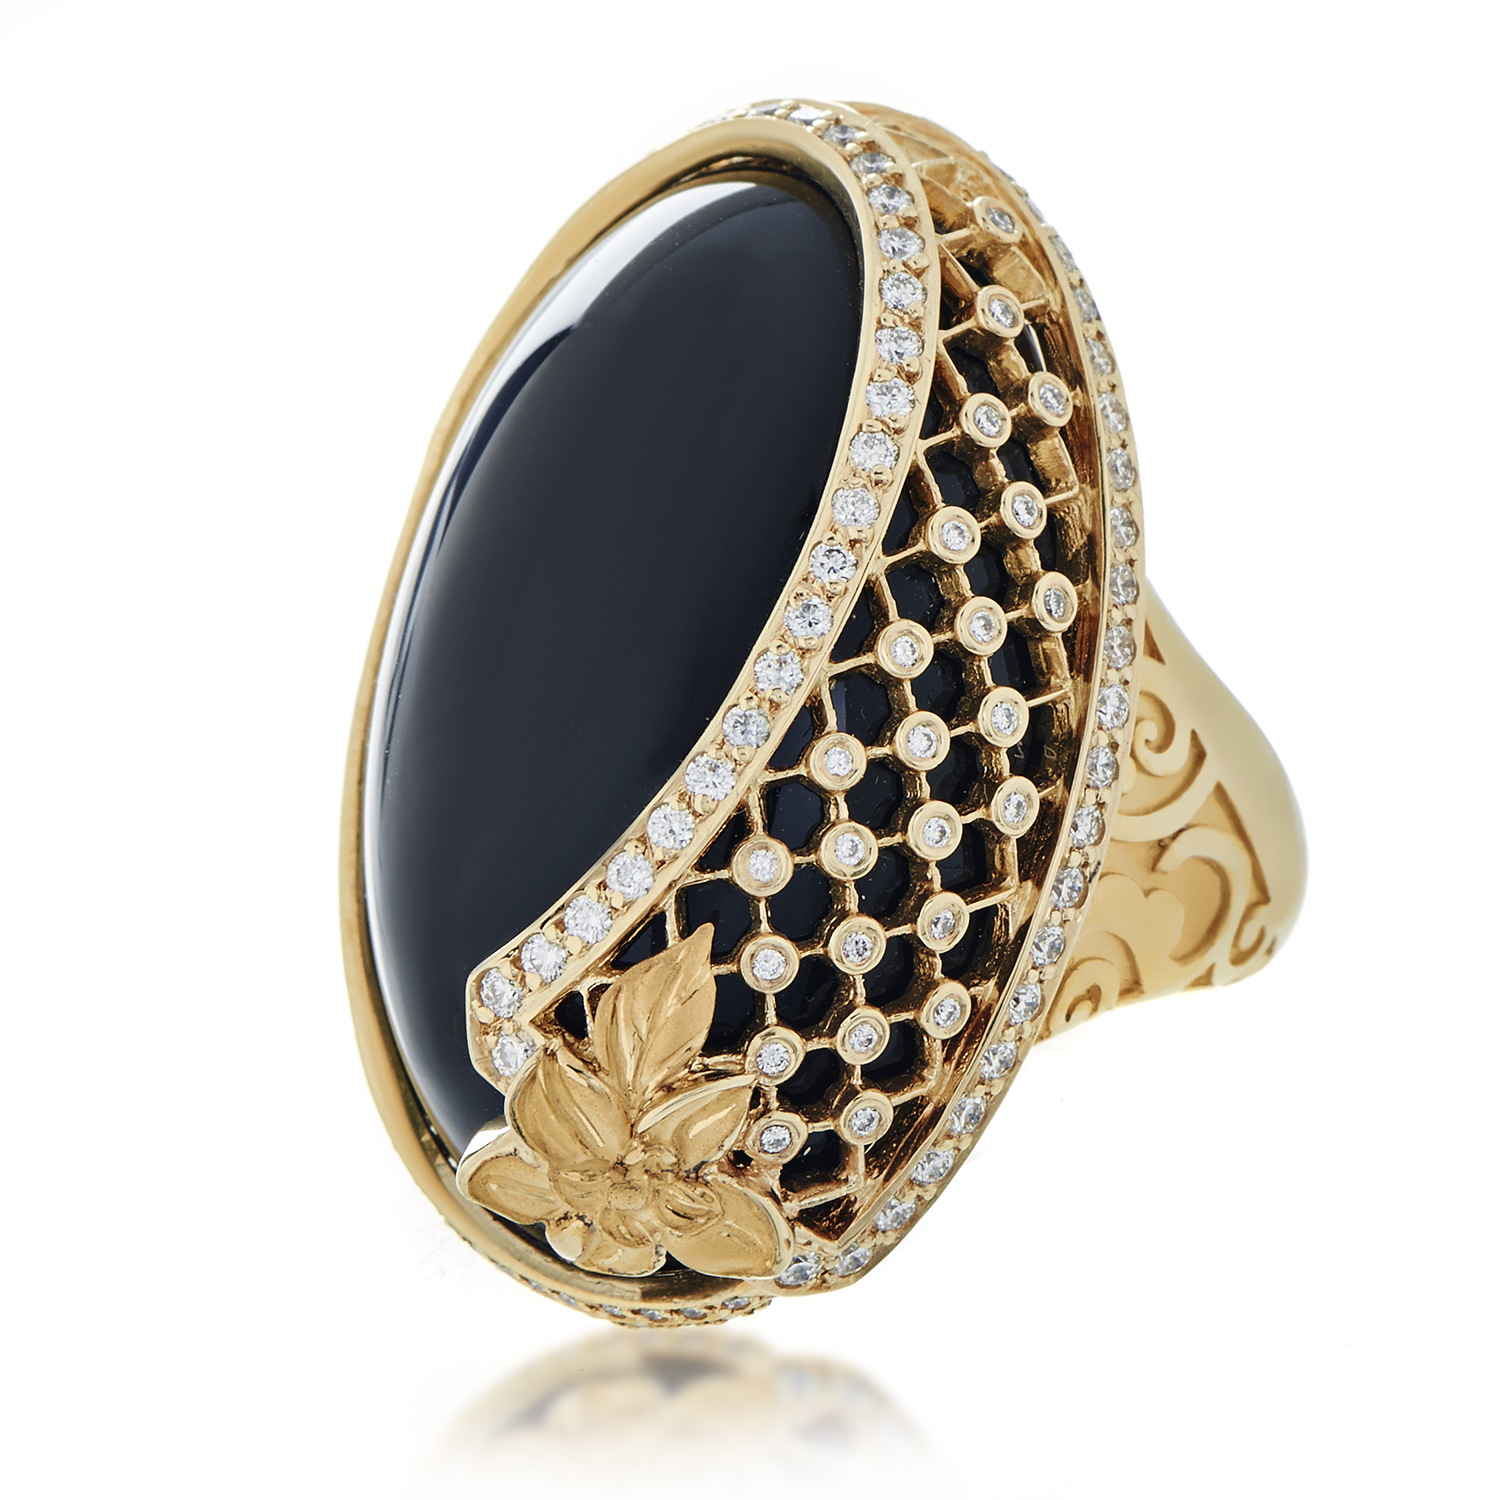 Sierpes Maxi 18K Yellow Gold Diamond & Onyx Cocktail Ring